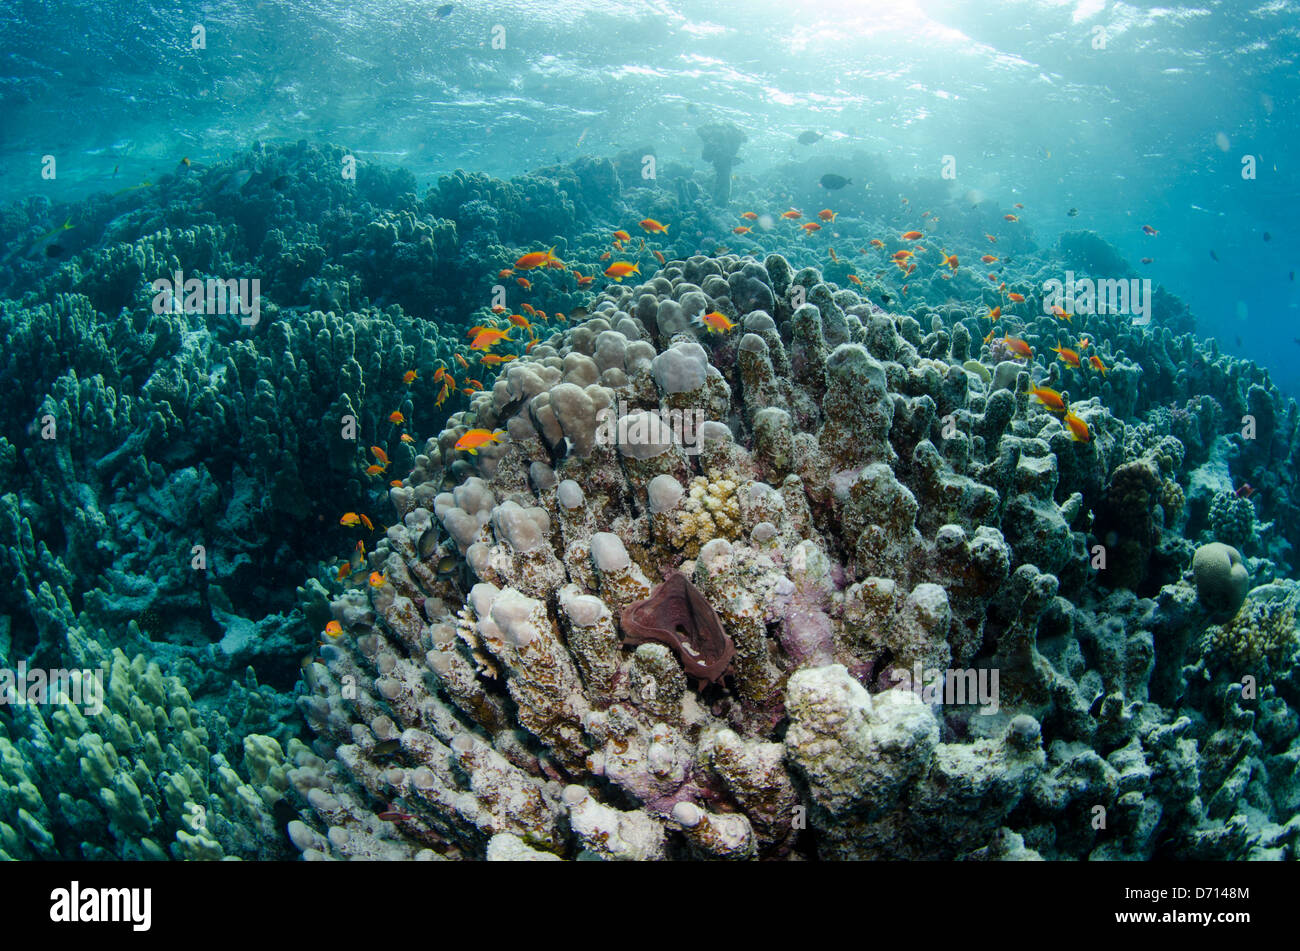 Sea Goldies swimming on a reef in the Red Sea in Egypt. - Stock Image